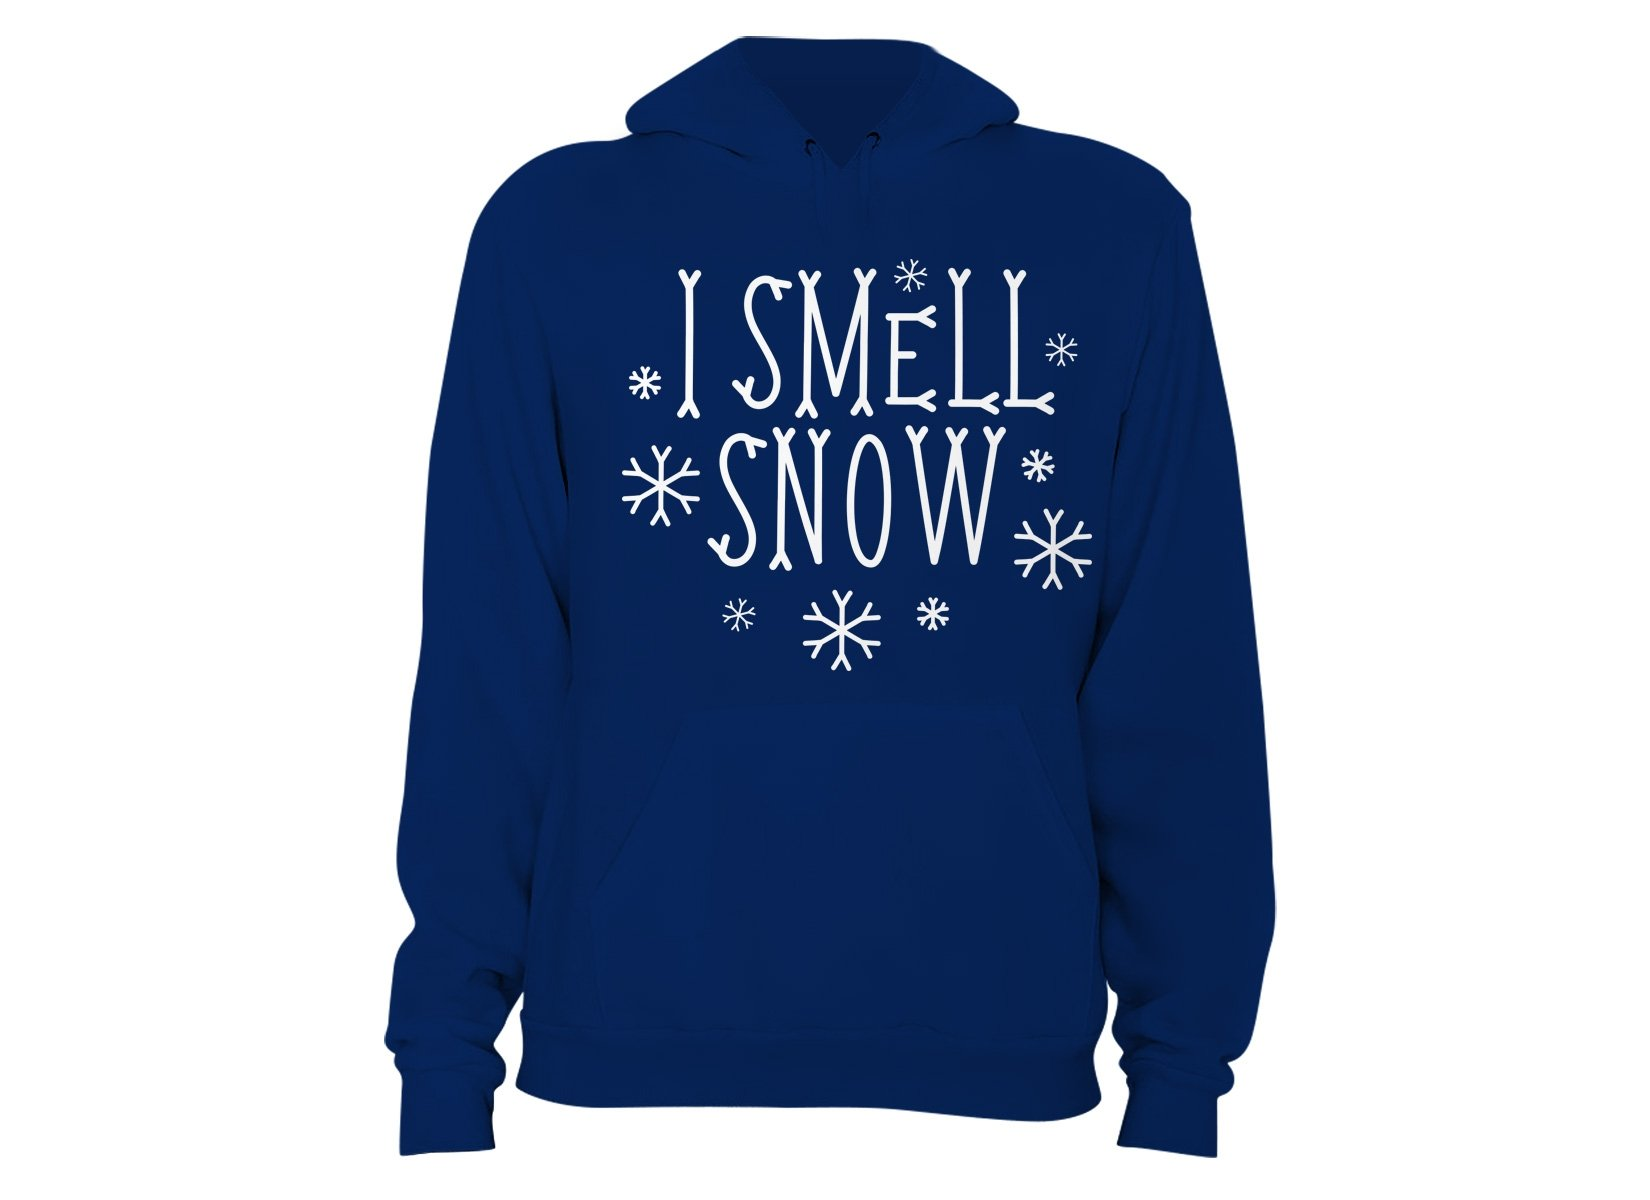 I Smell Snow on Hoodie